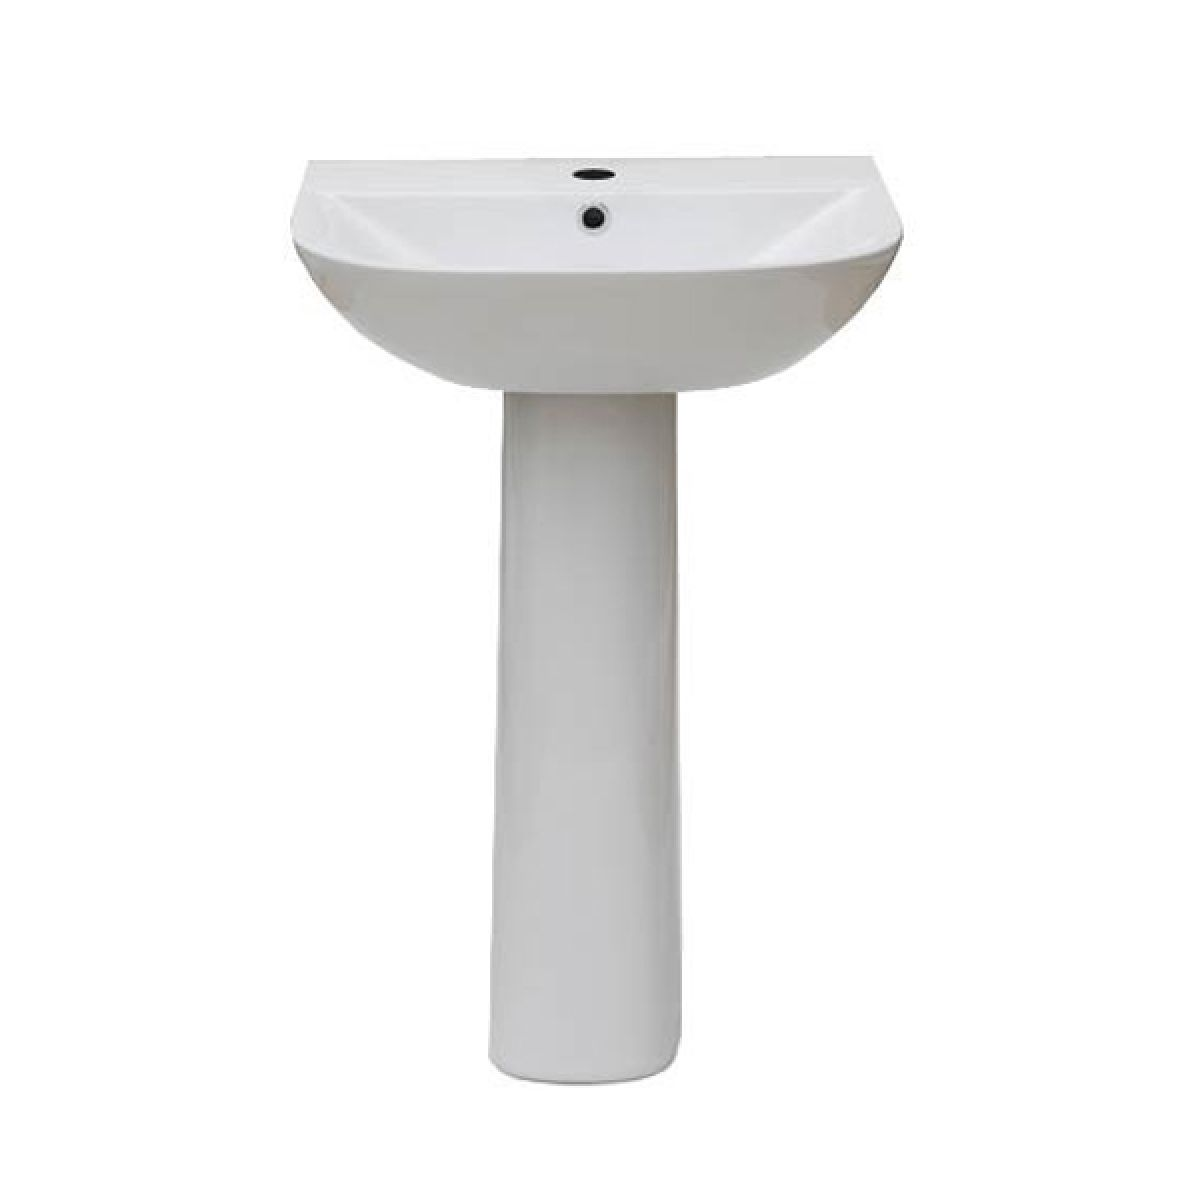 Frontline F60S 1 Tap Hole Basin with Pedistal 550mm